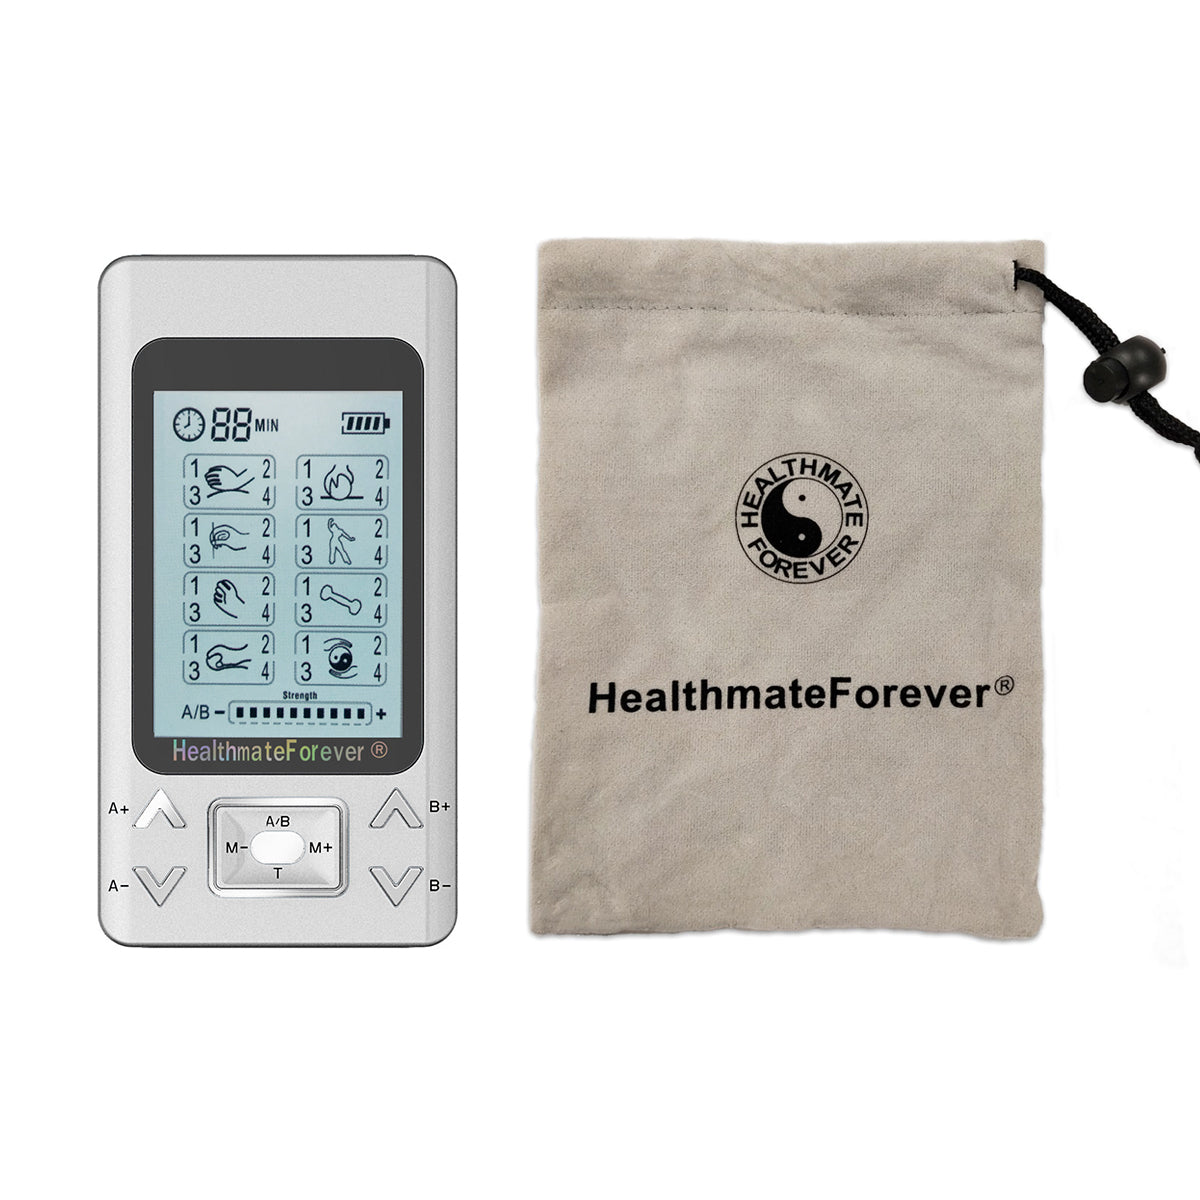 New Arrival - 2020 Version 32 Modes PRO32AB2 TENS Unit & Muscle Stimulator - 2 Year Warranty - HealthmateForever